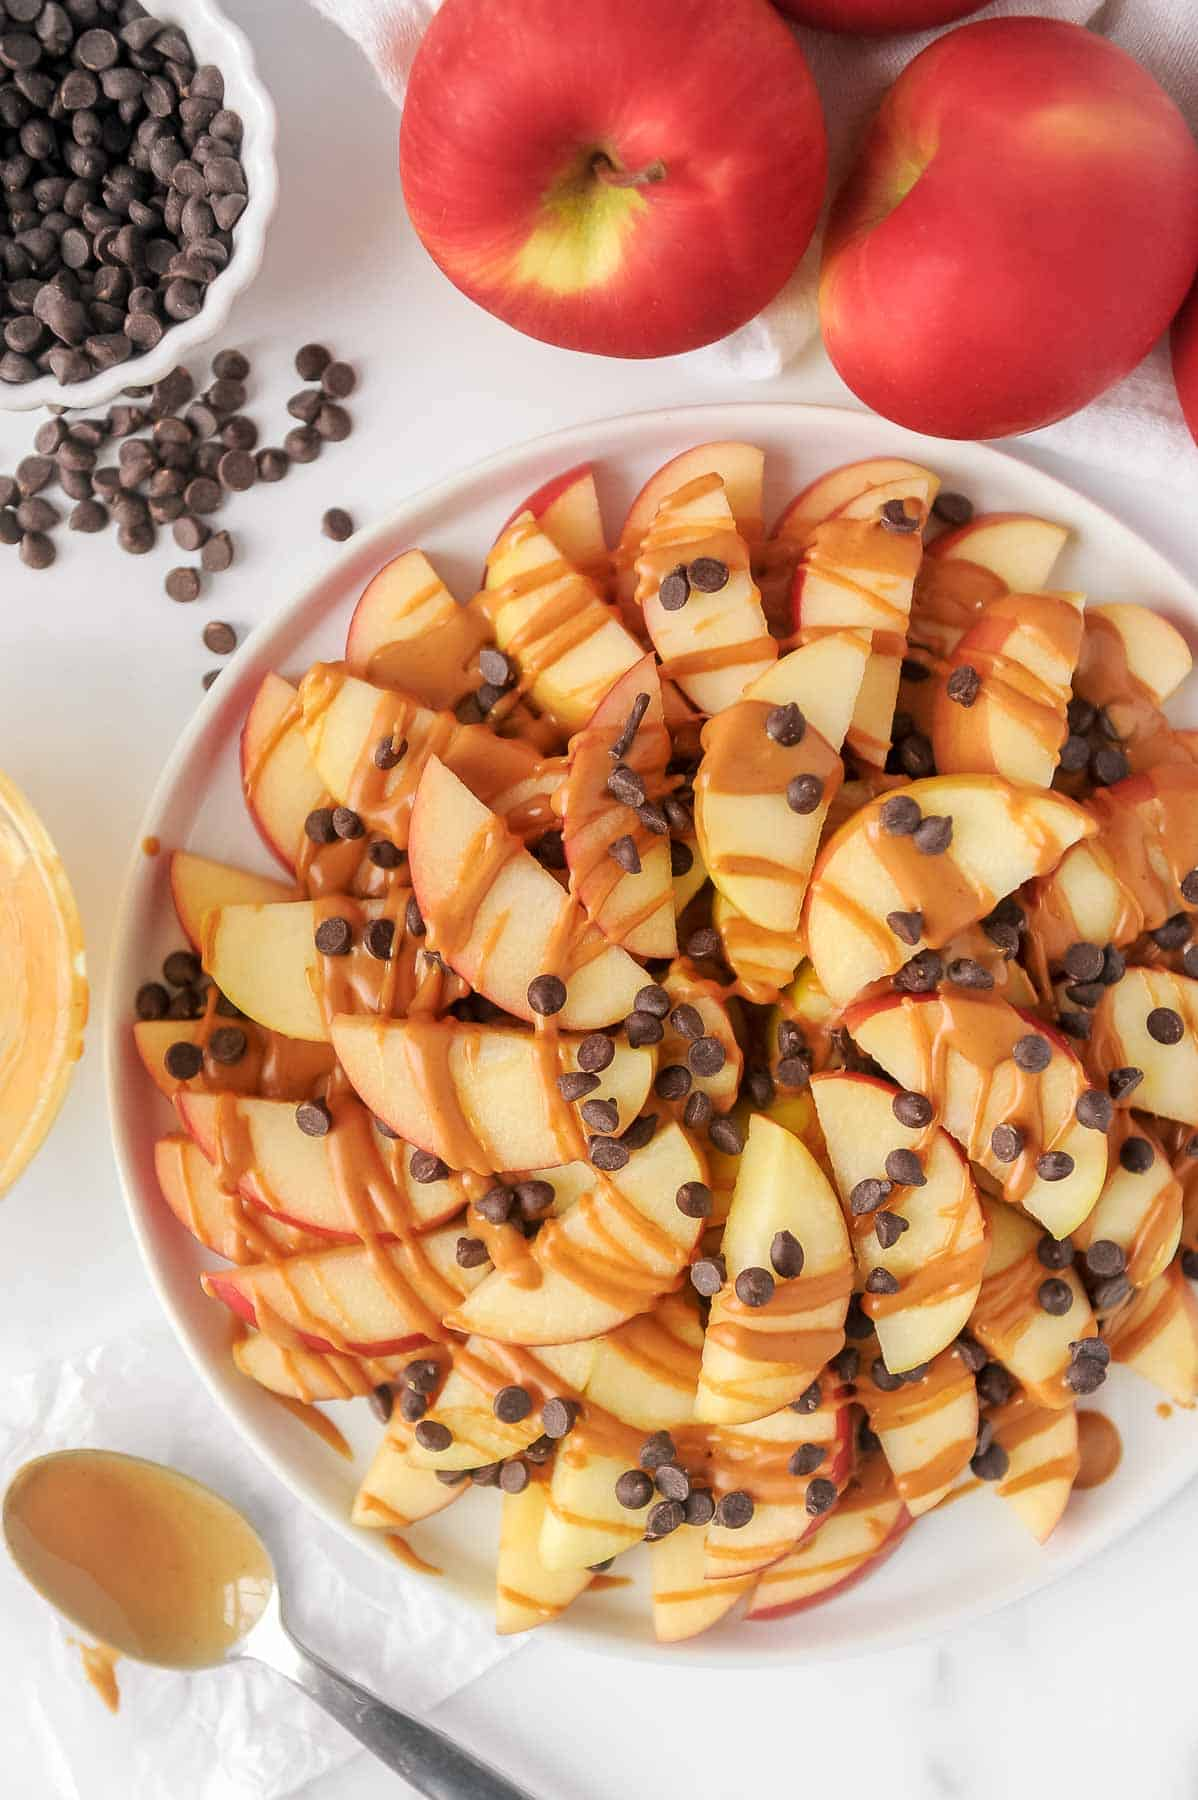 plate and ingredients to make healthy apple nachos